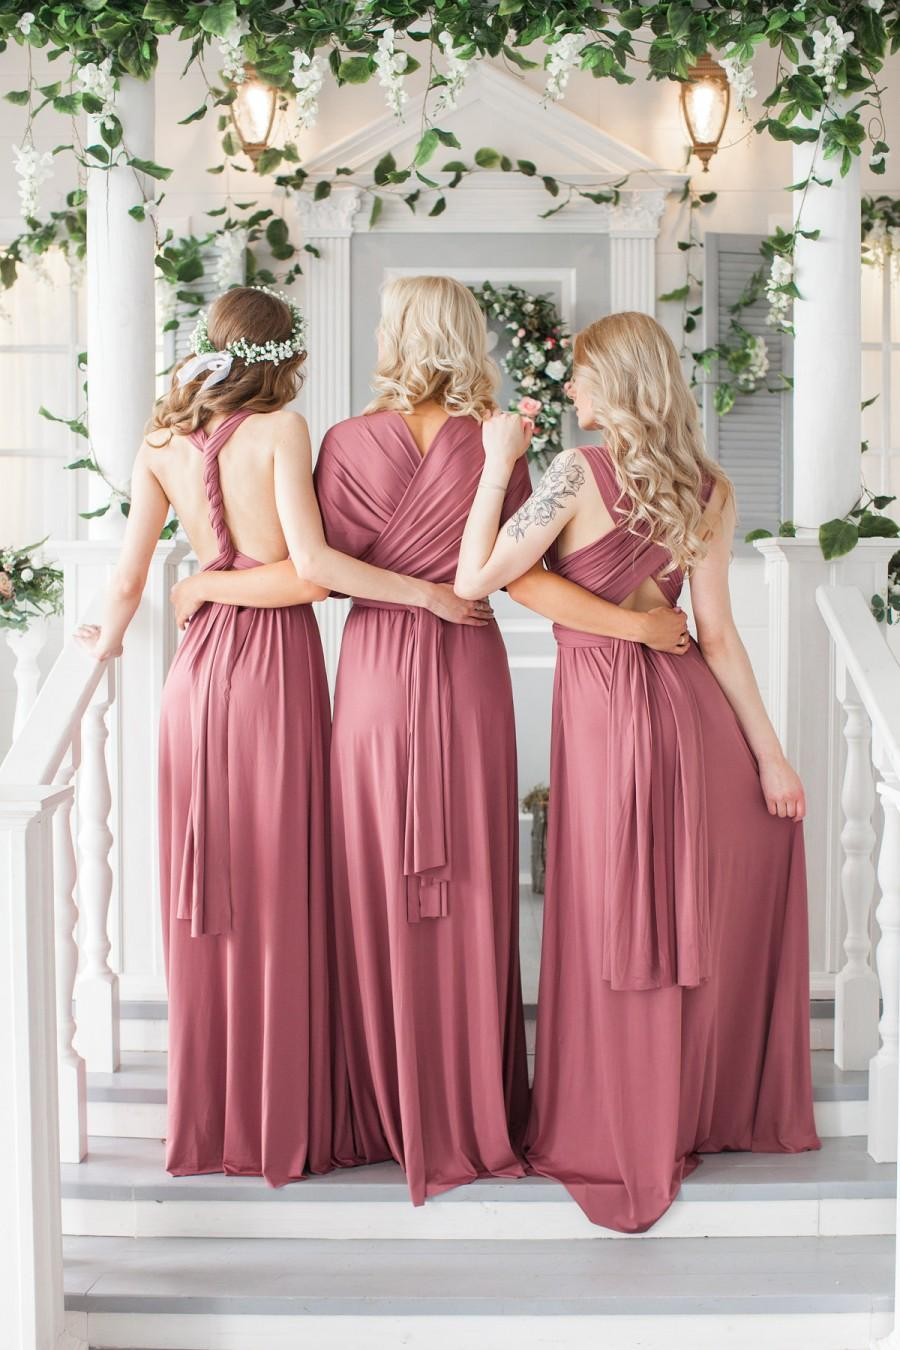 Свадьба - Bridesmaid Dress Infinity Dusty Dress Convertible Dress Wrap Dress  Prom Dress Multiway Dress Champagne Party Dress Ship from New York